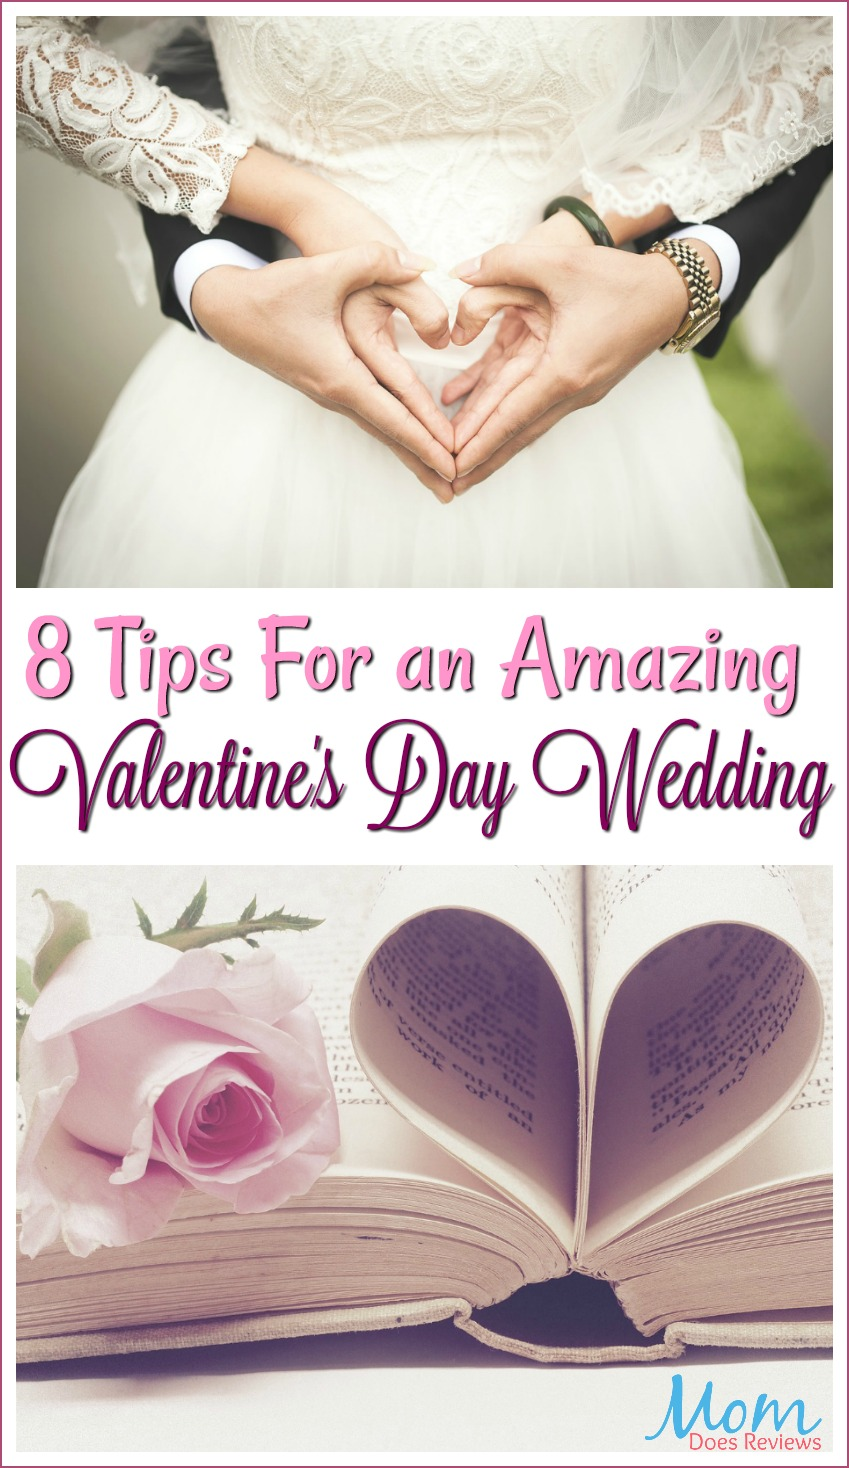 8 Simple Tips For an Amazing Valentne's Day Wedding #wedding #fashion #love #valentinesday #weddinggowns #love